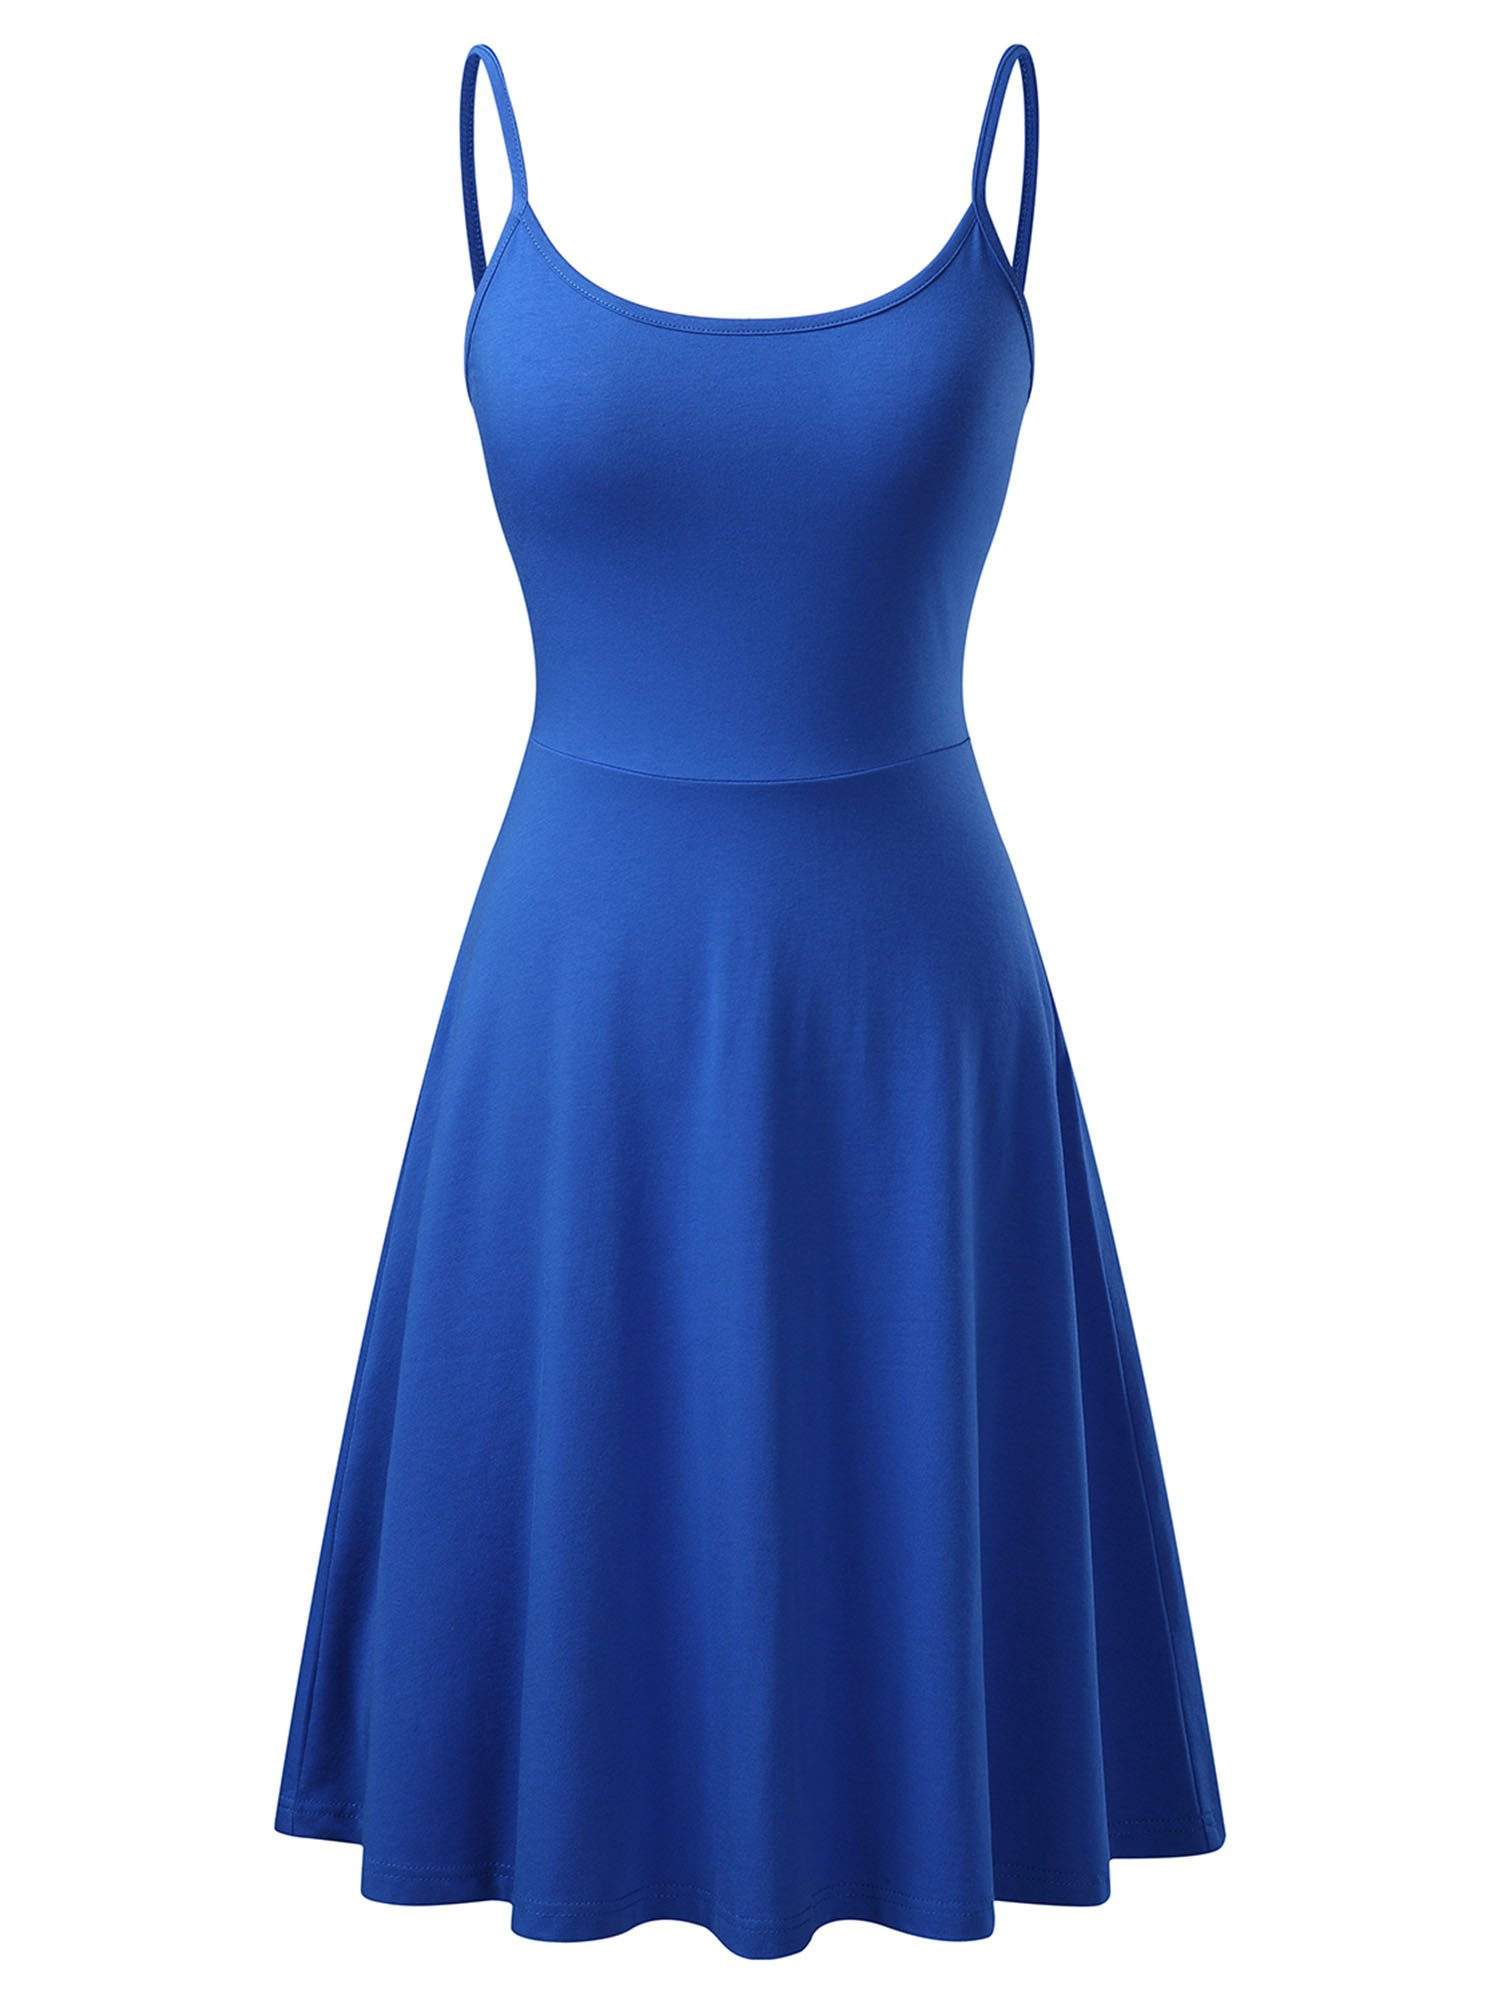 Available at Amazon: VETIOR Women's Sleeveless Adjustable Strappy Flared Midi Skater Dress